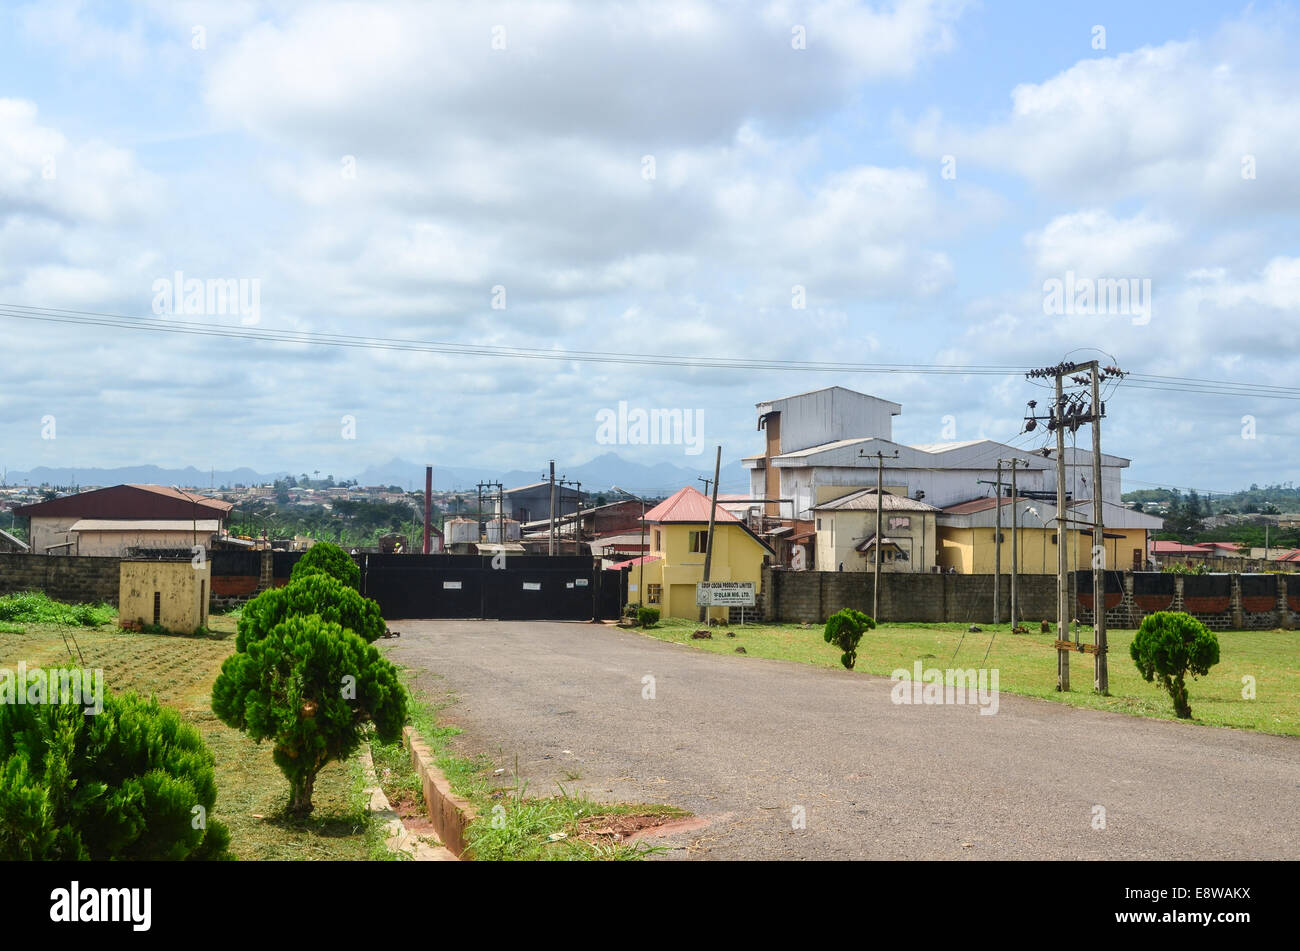 A cocoa factory in Akure, Nigeria - Stock Image